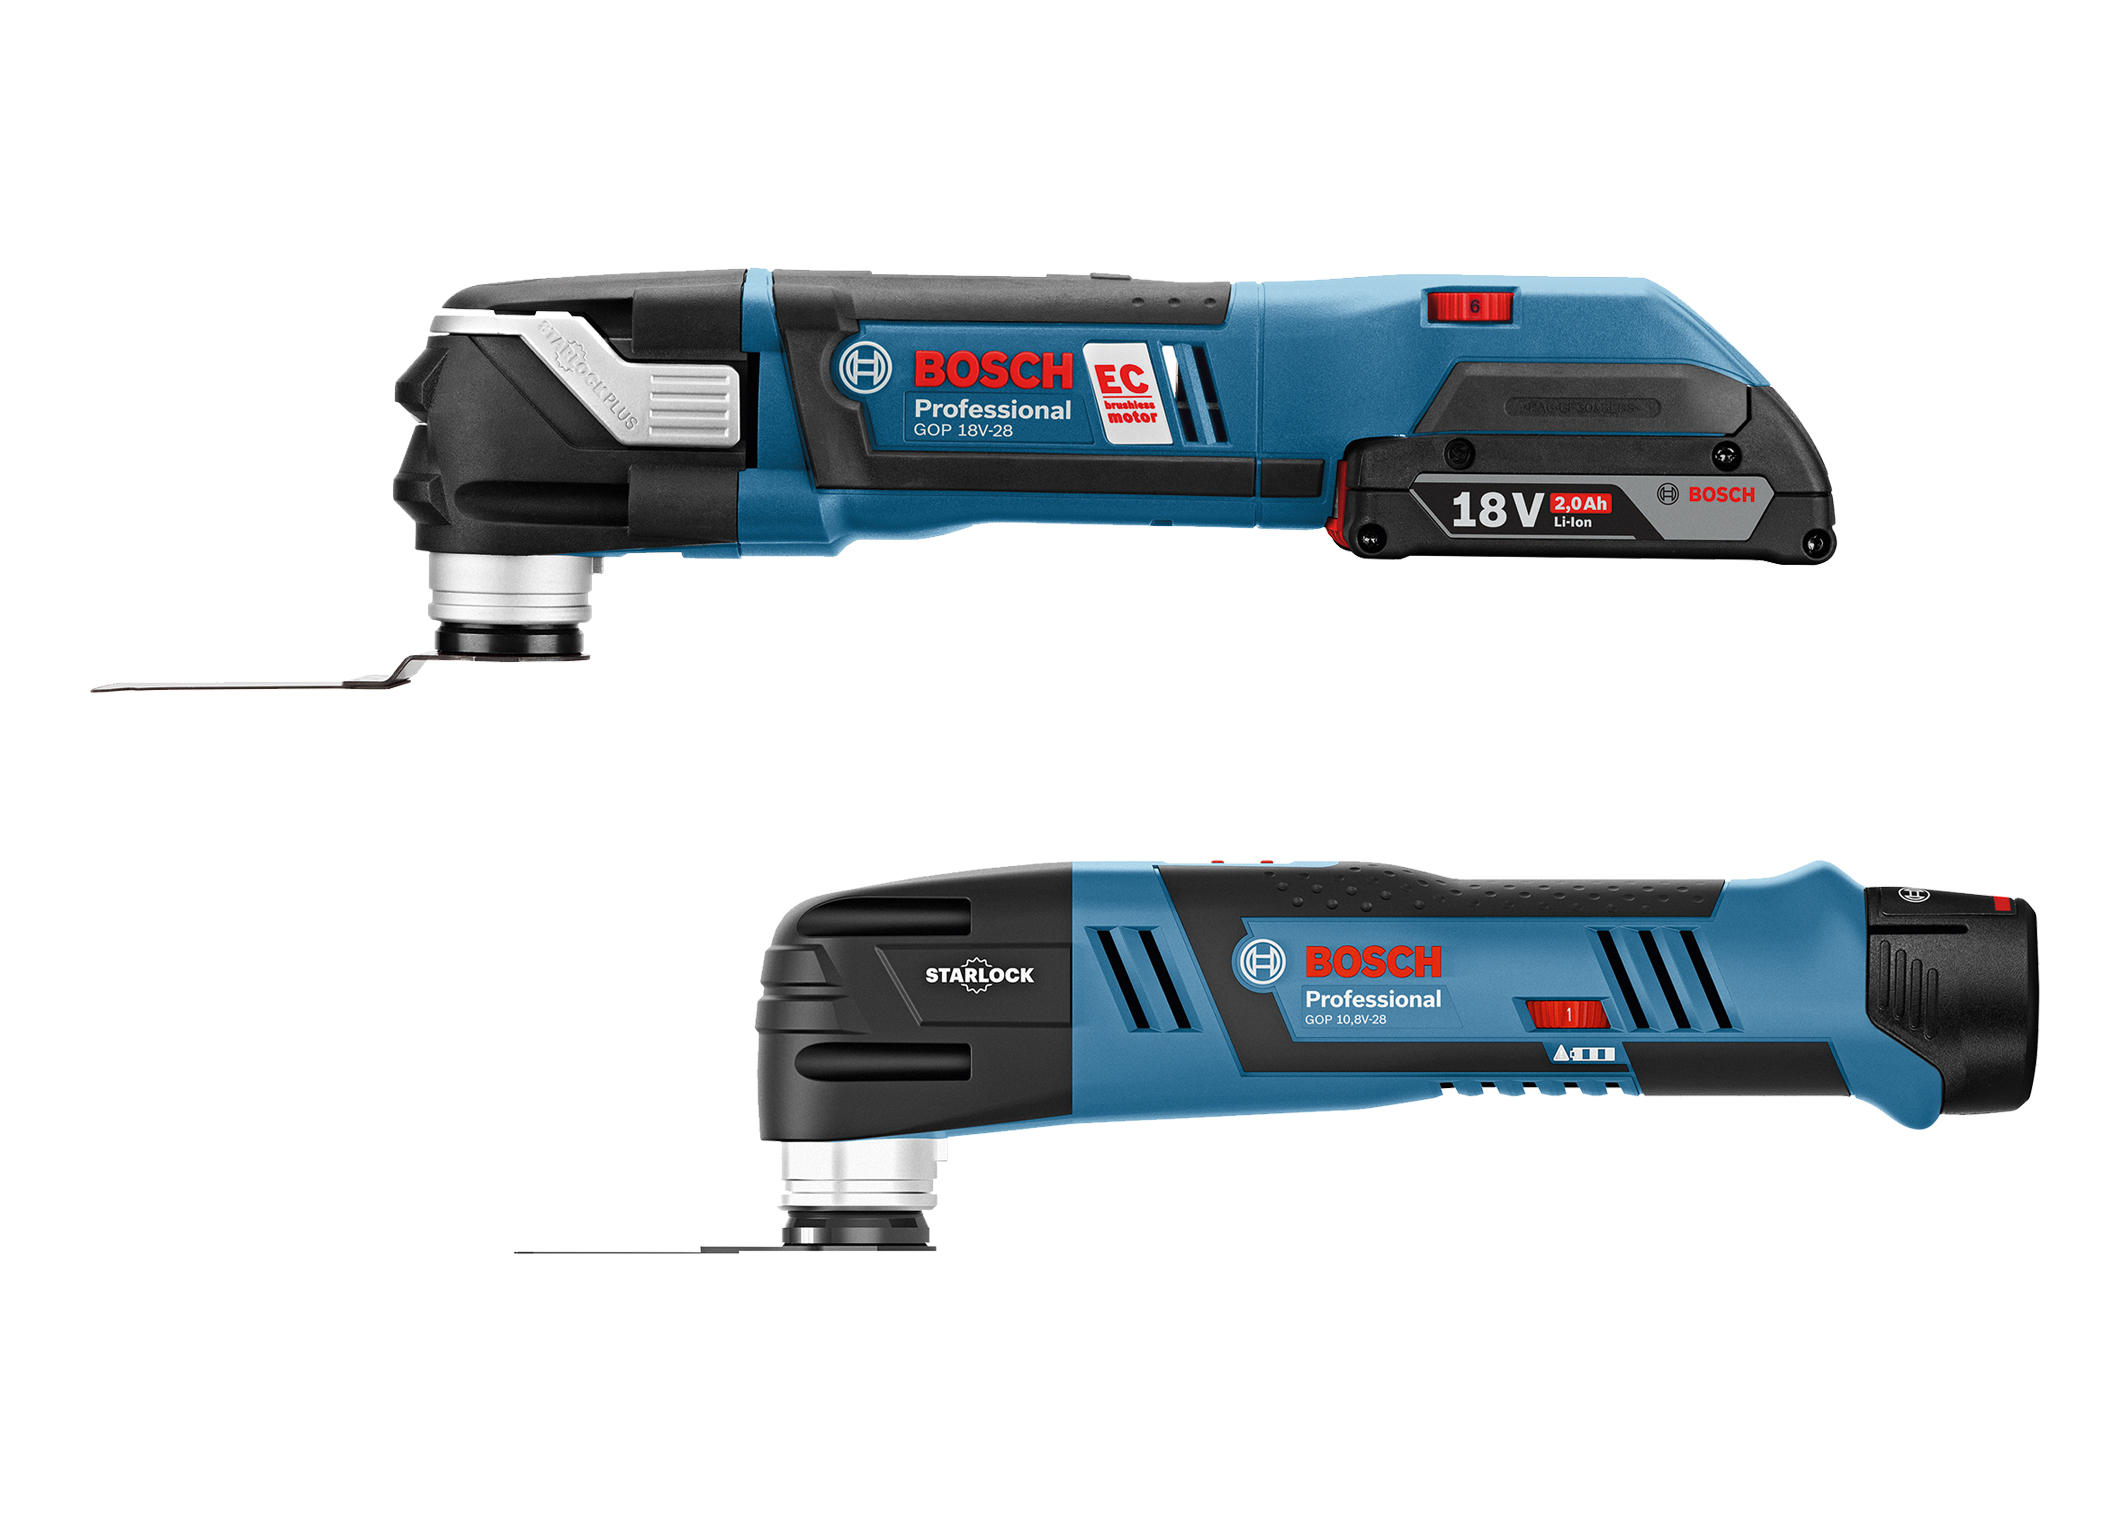 new bosch cordless 18v and 12v oscillating multitools with starlock mount spotted tool craze. Black Bedroom Furniture Sets. Home Design Ideas